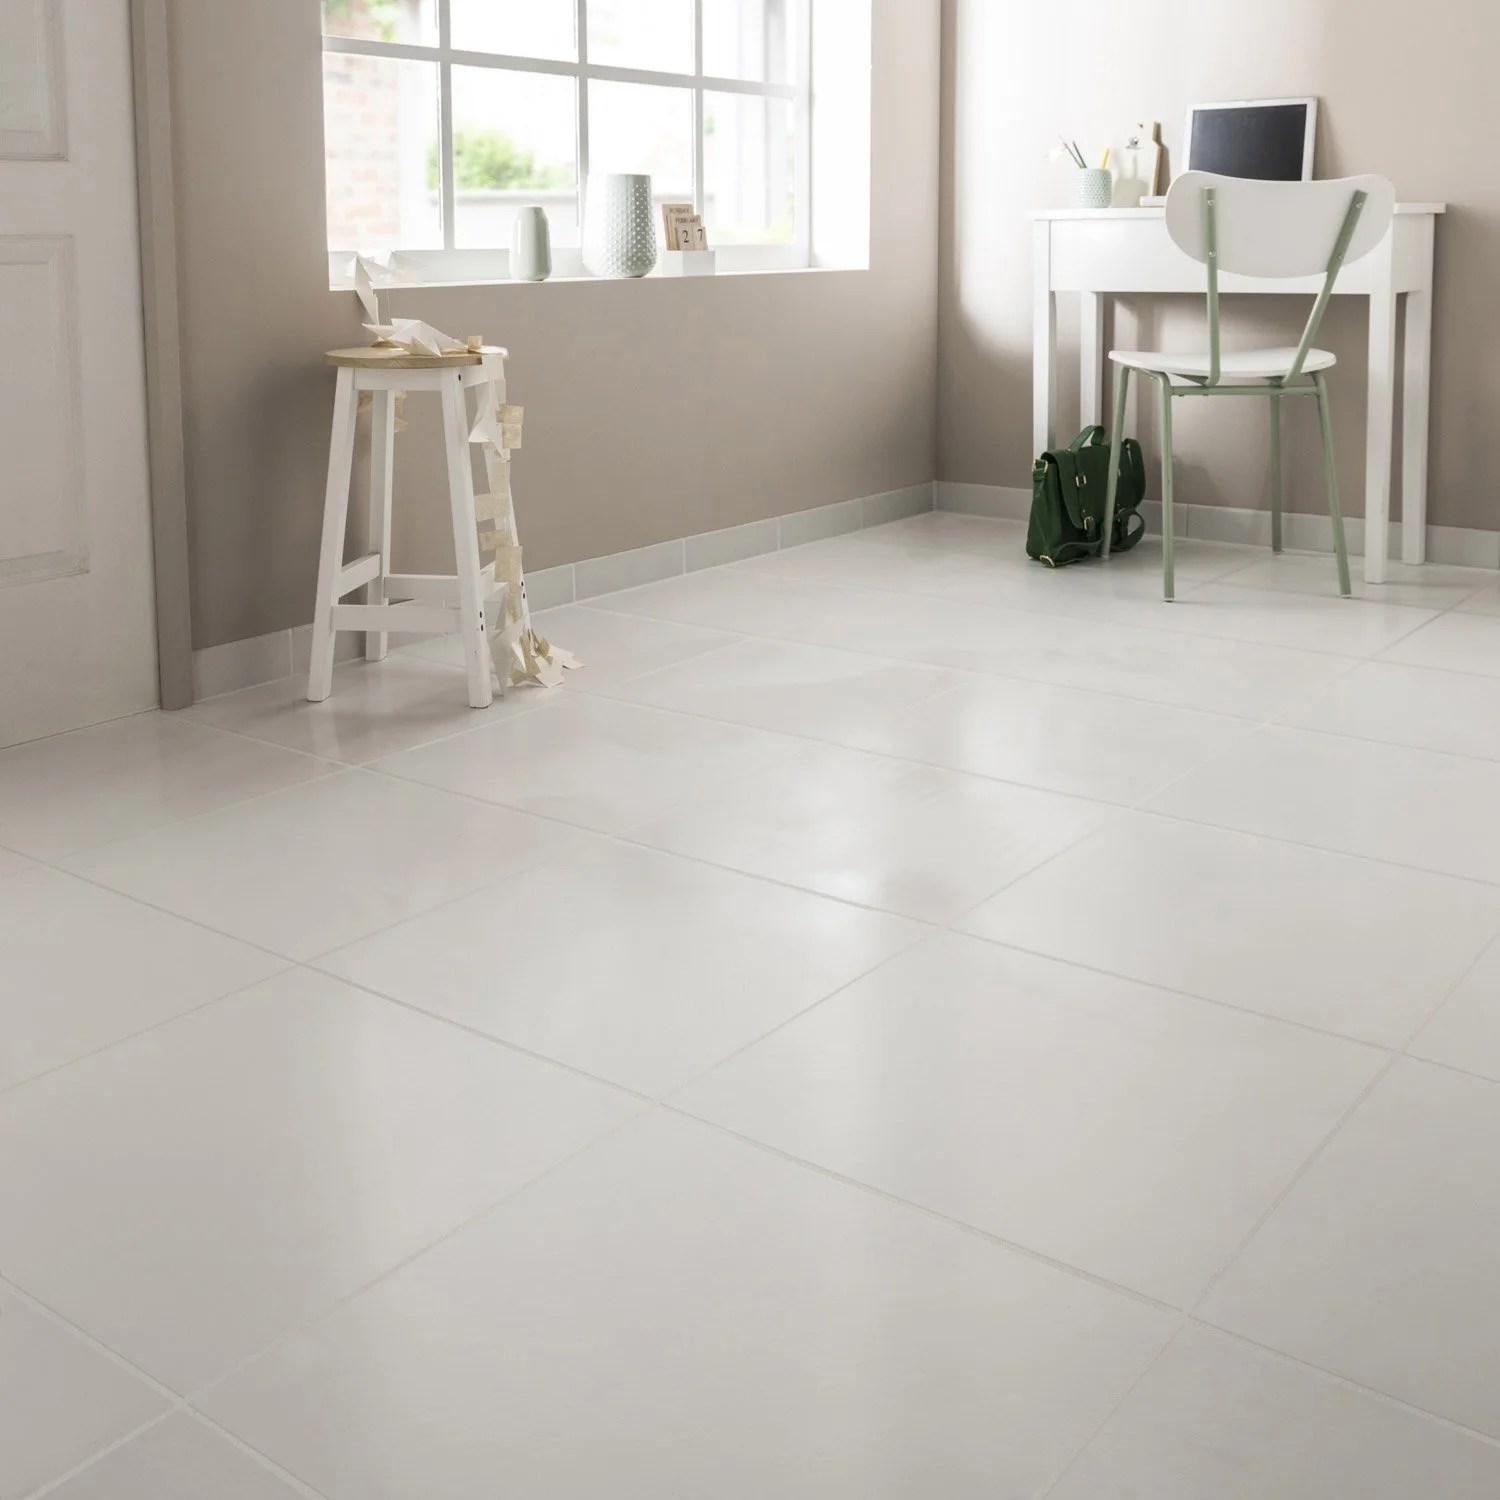 Carrelage Brillant Sol Carrelage Blanc Brillant 45x45